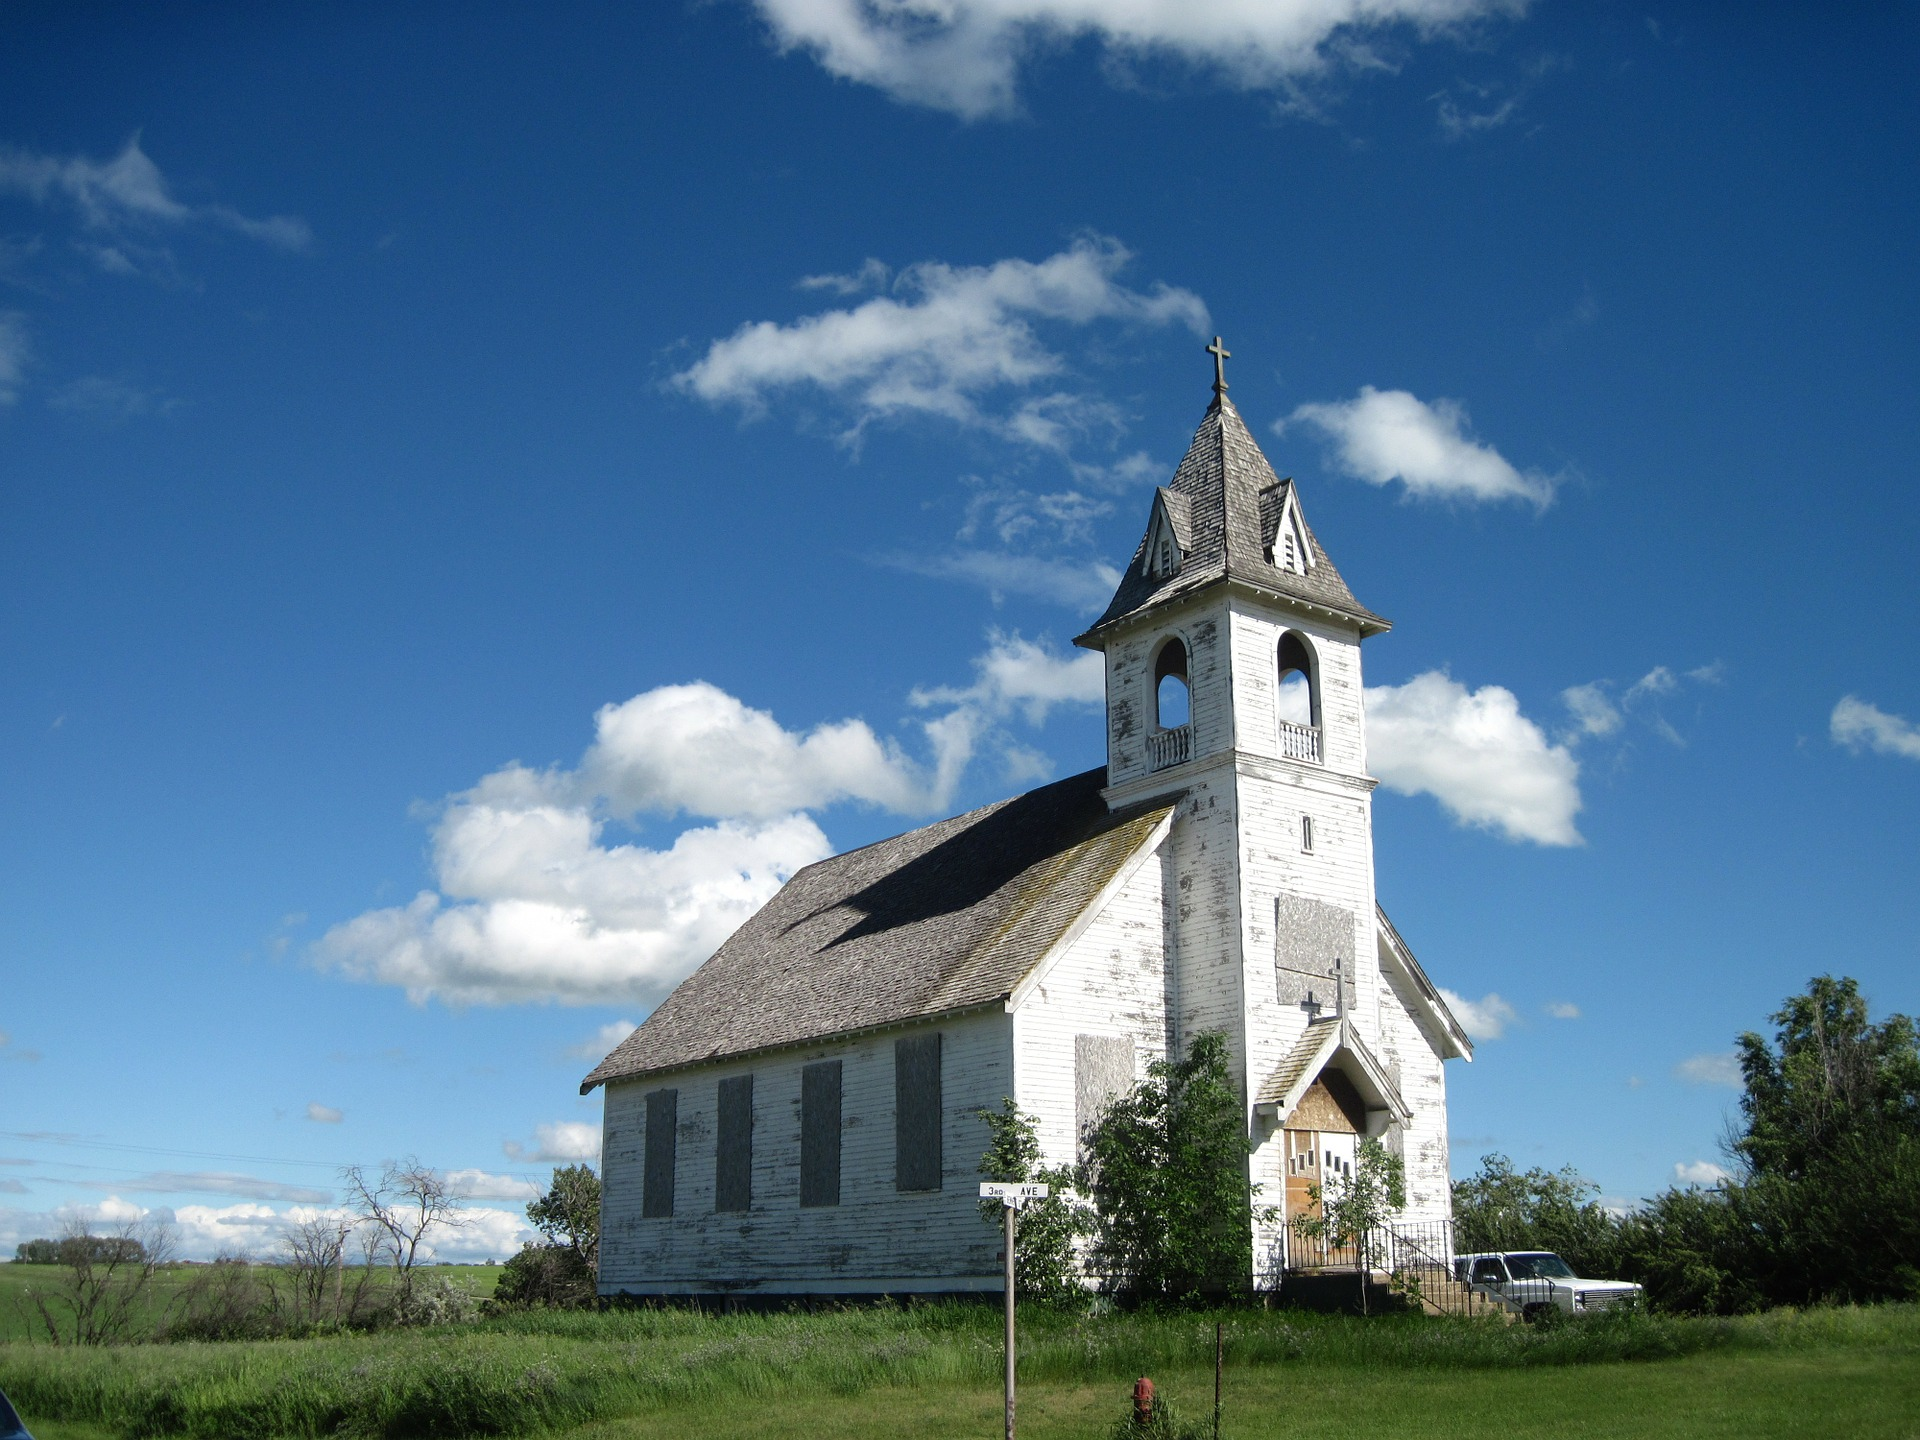 abandoned-church-337768_1920.jpg